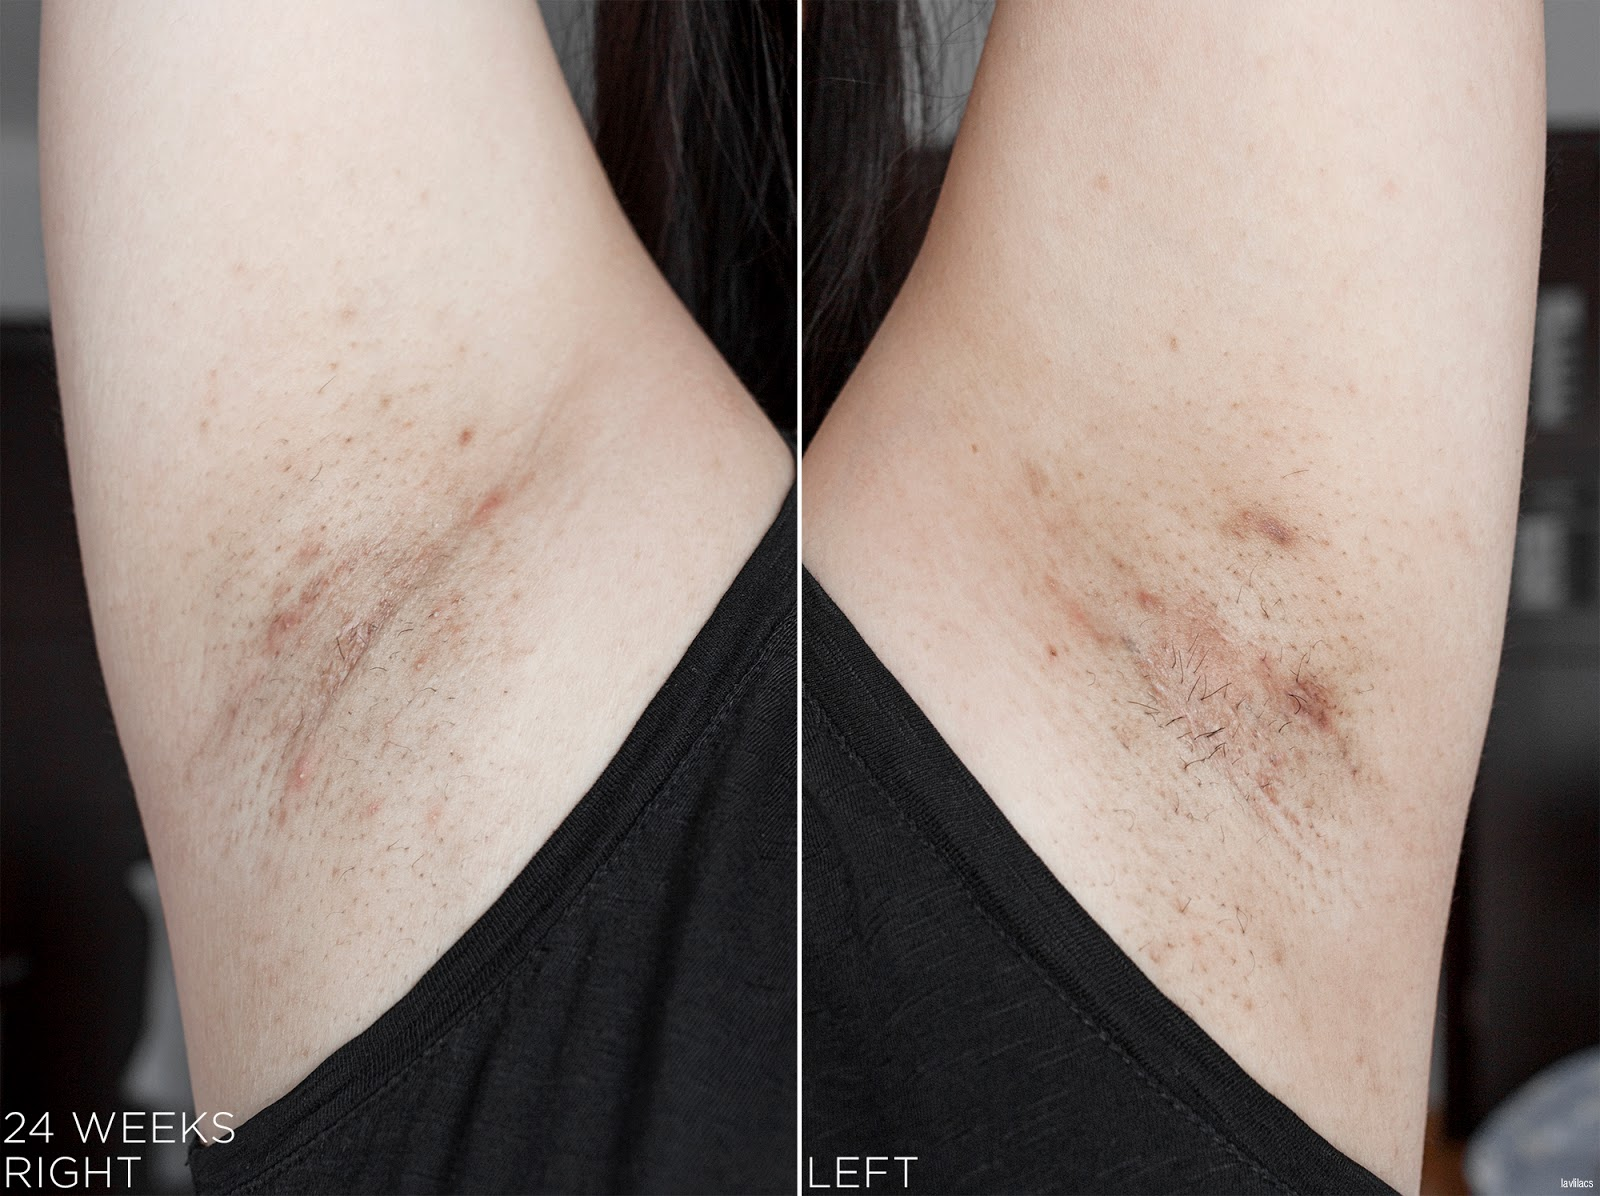 tria Hair Removal Laser Armpits Hair 24 Weeks